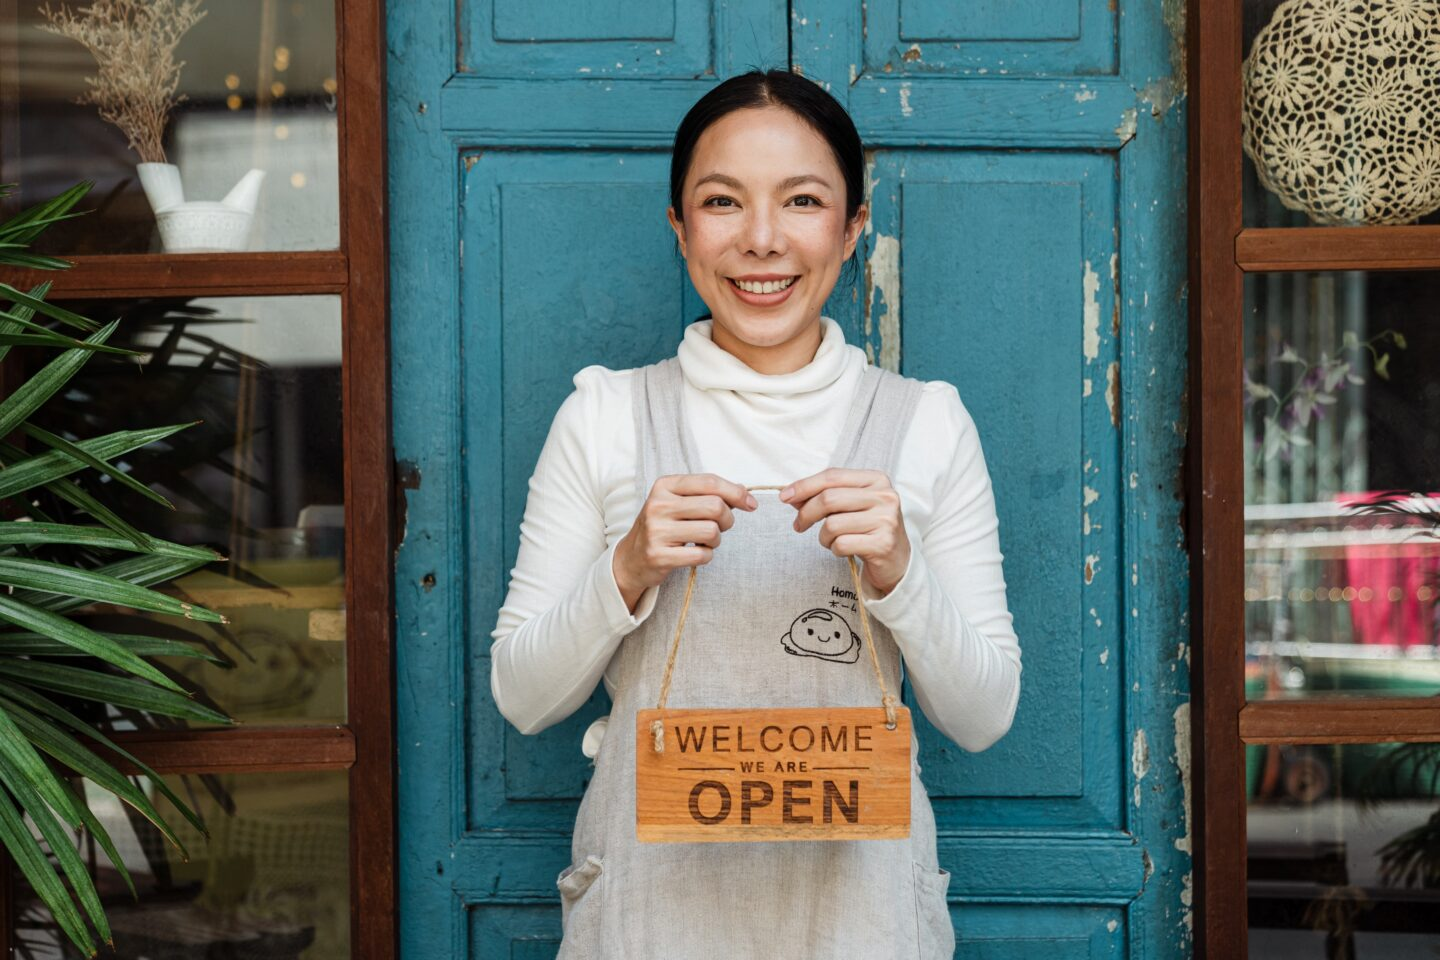 A woman is holding a sign Open, Welcome that means her business is opened.